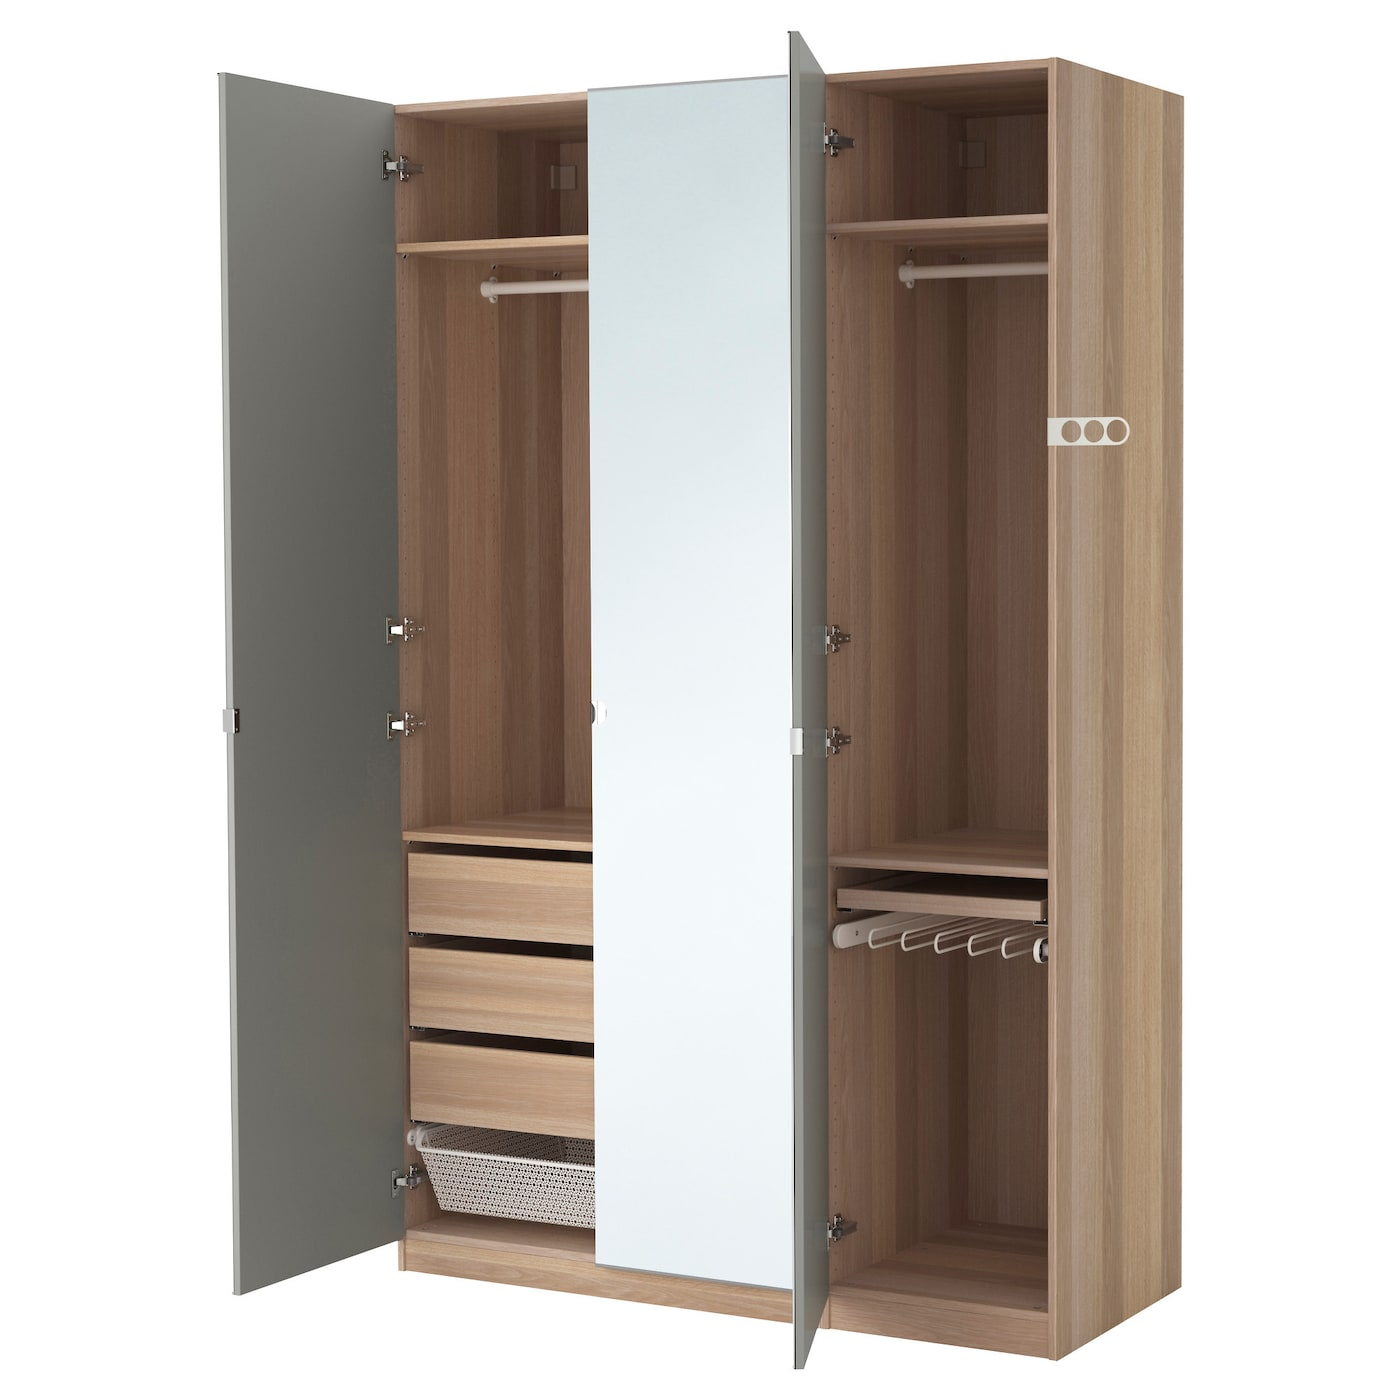 Pax wardrobe white stained oak effect vikedal mirror glass for Porte miroir ikea